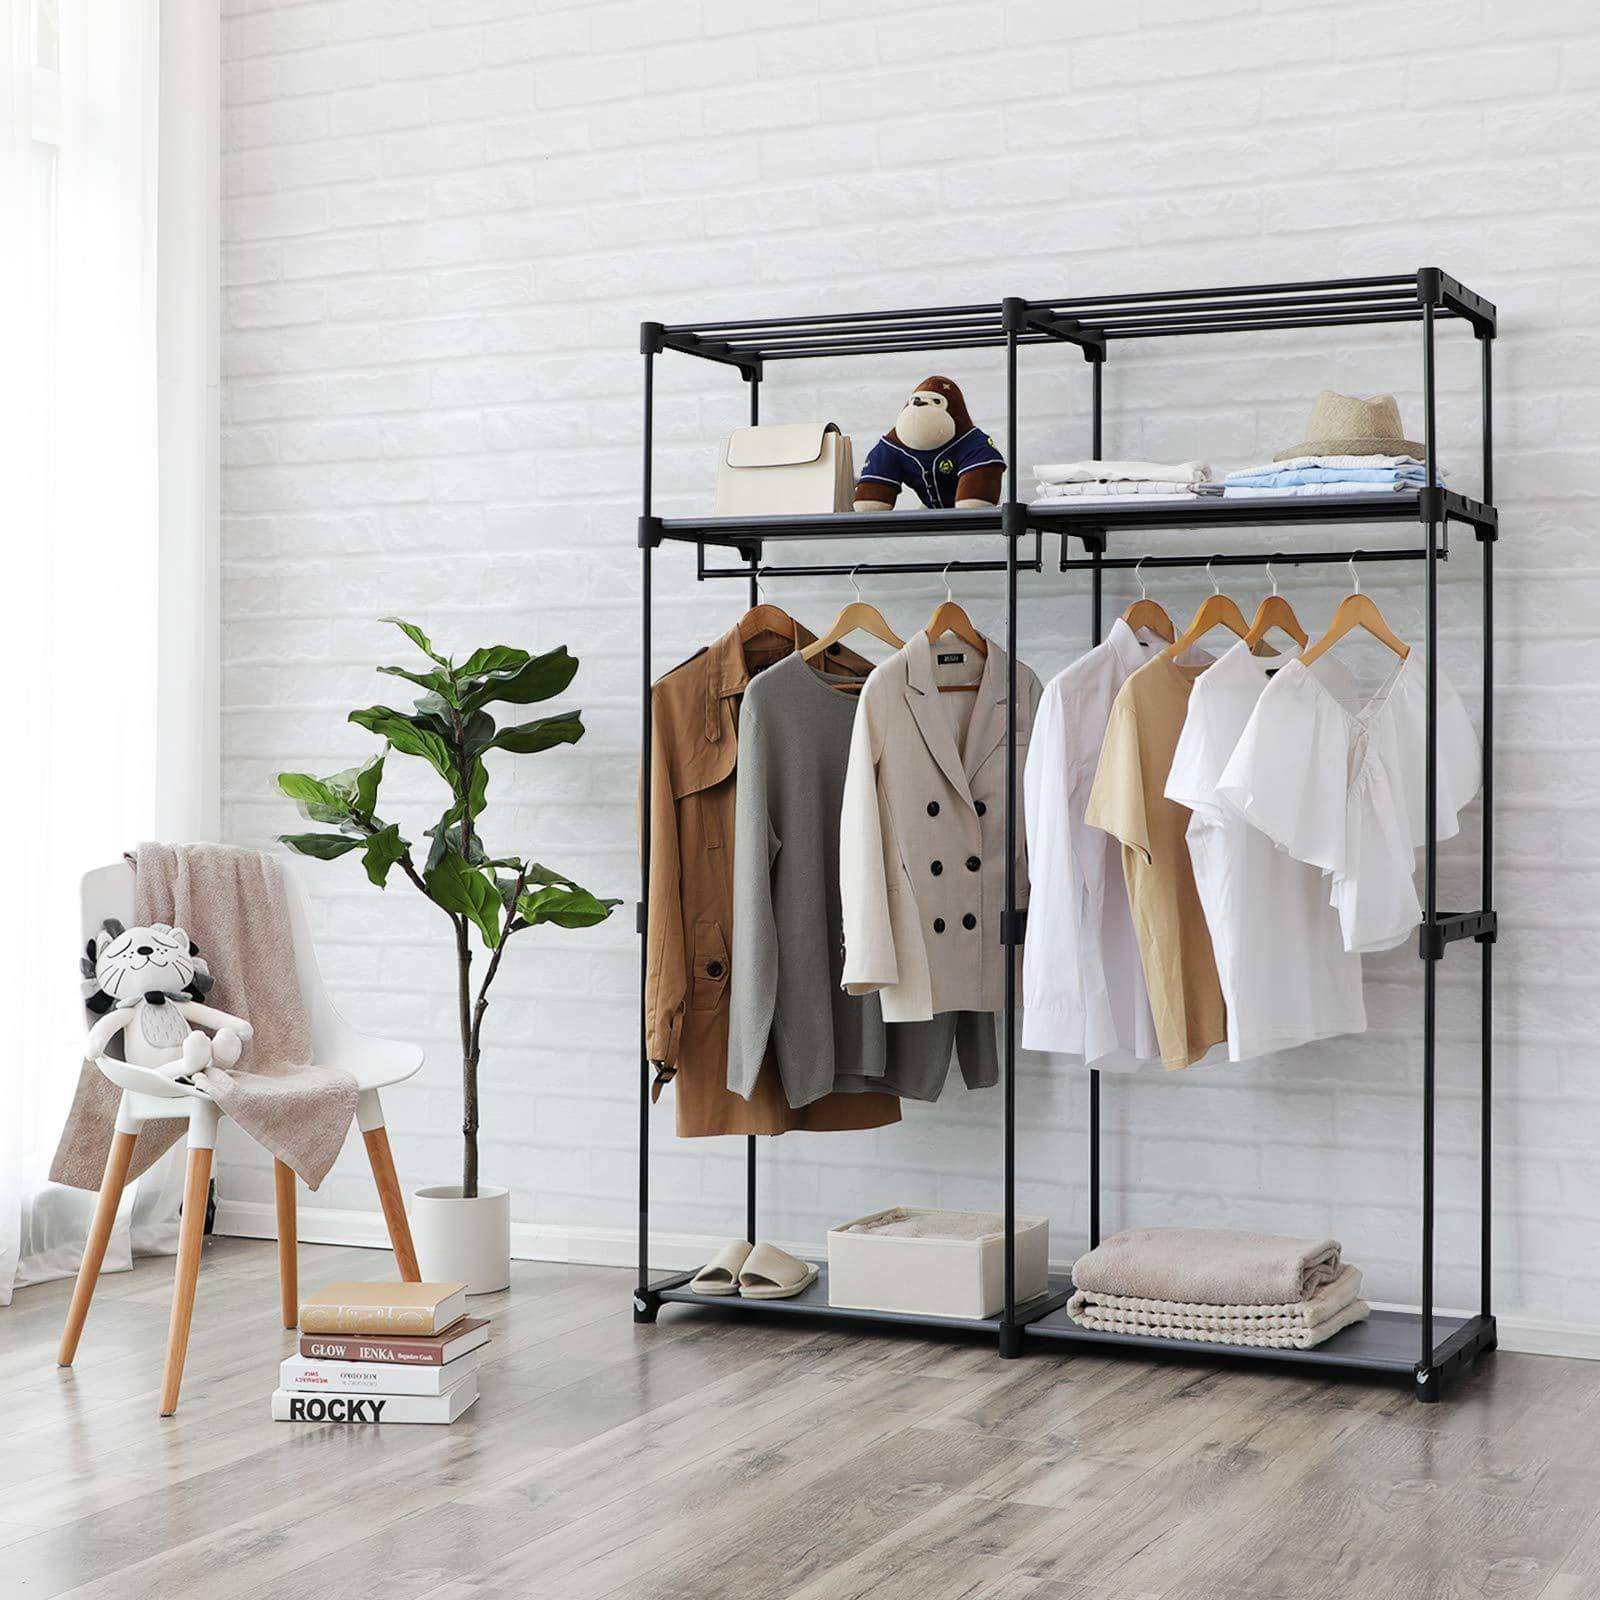 Save songmics closet storage organizer portable wardrobe with hanging rods clothes rack foldable cloakroom study stable 55 1 x 16 9 x 68 5 inches gray uryg02gy